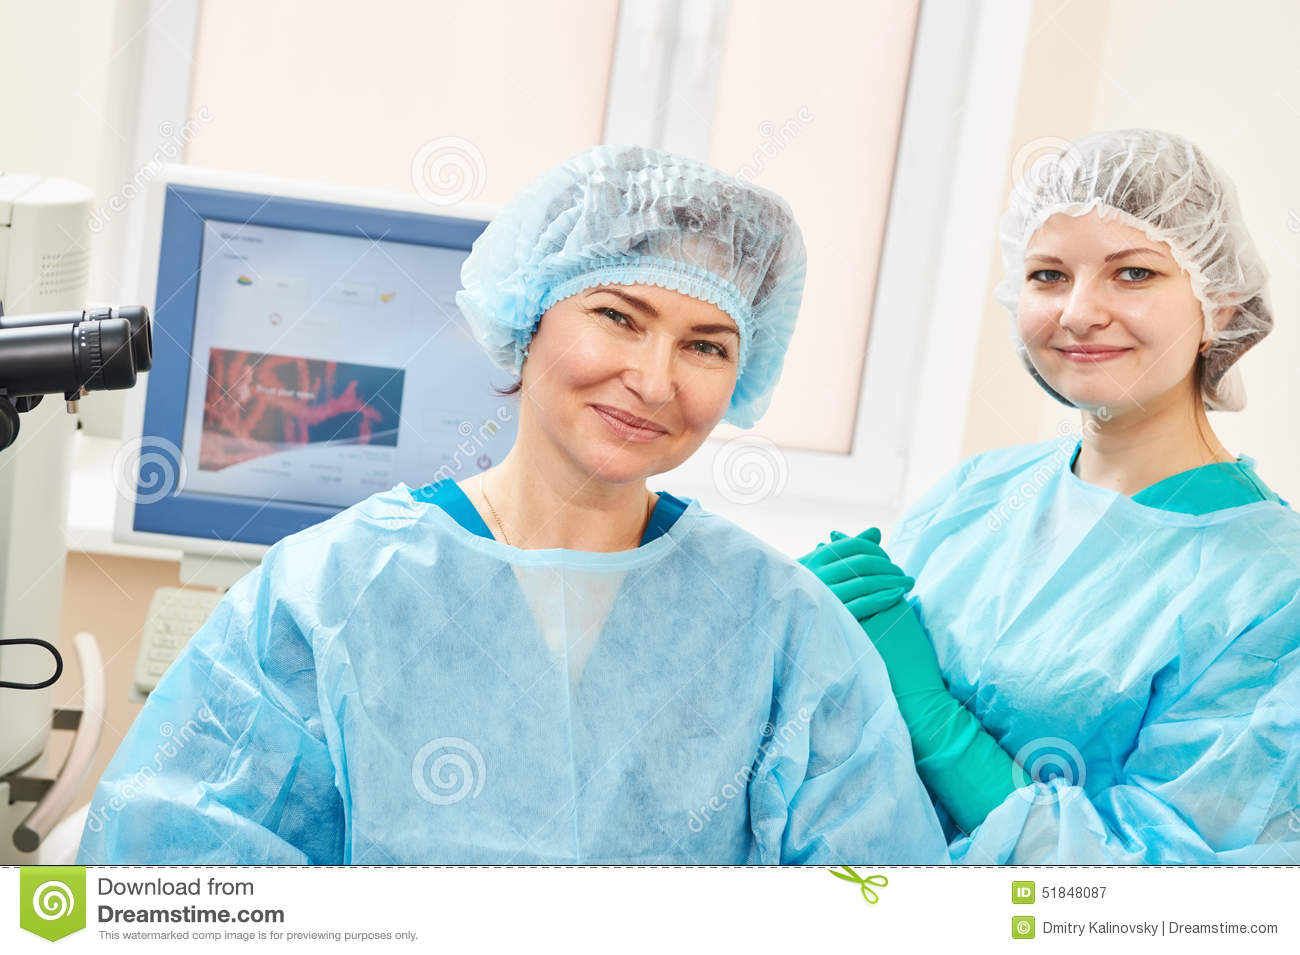 how to become a surgeon assistant